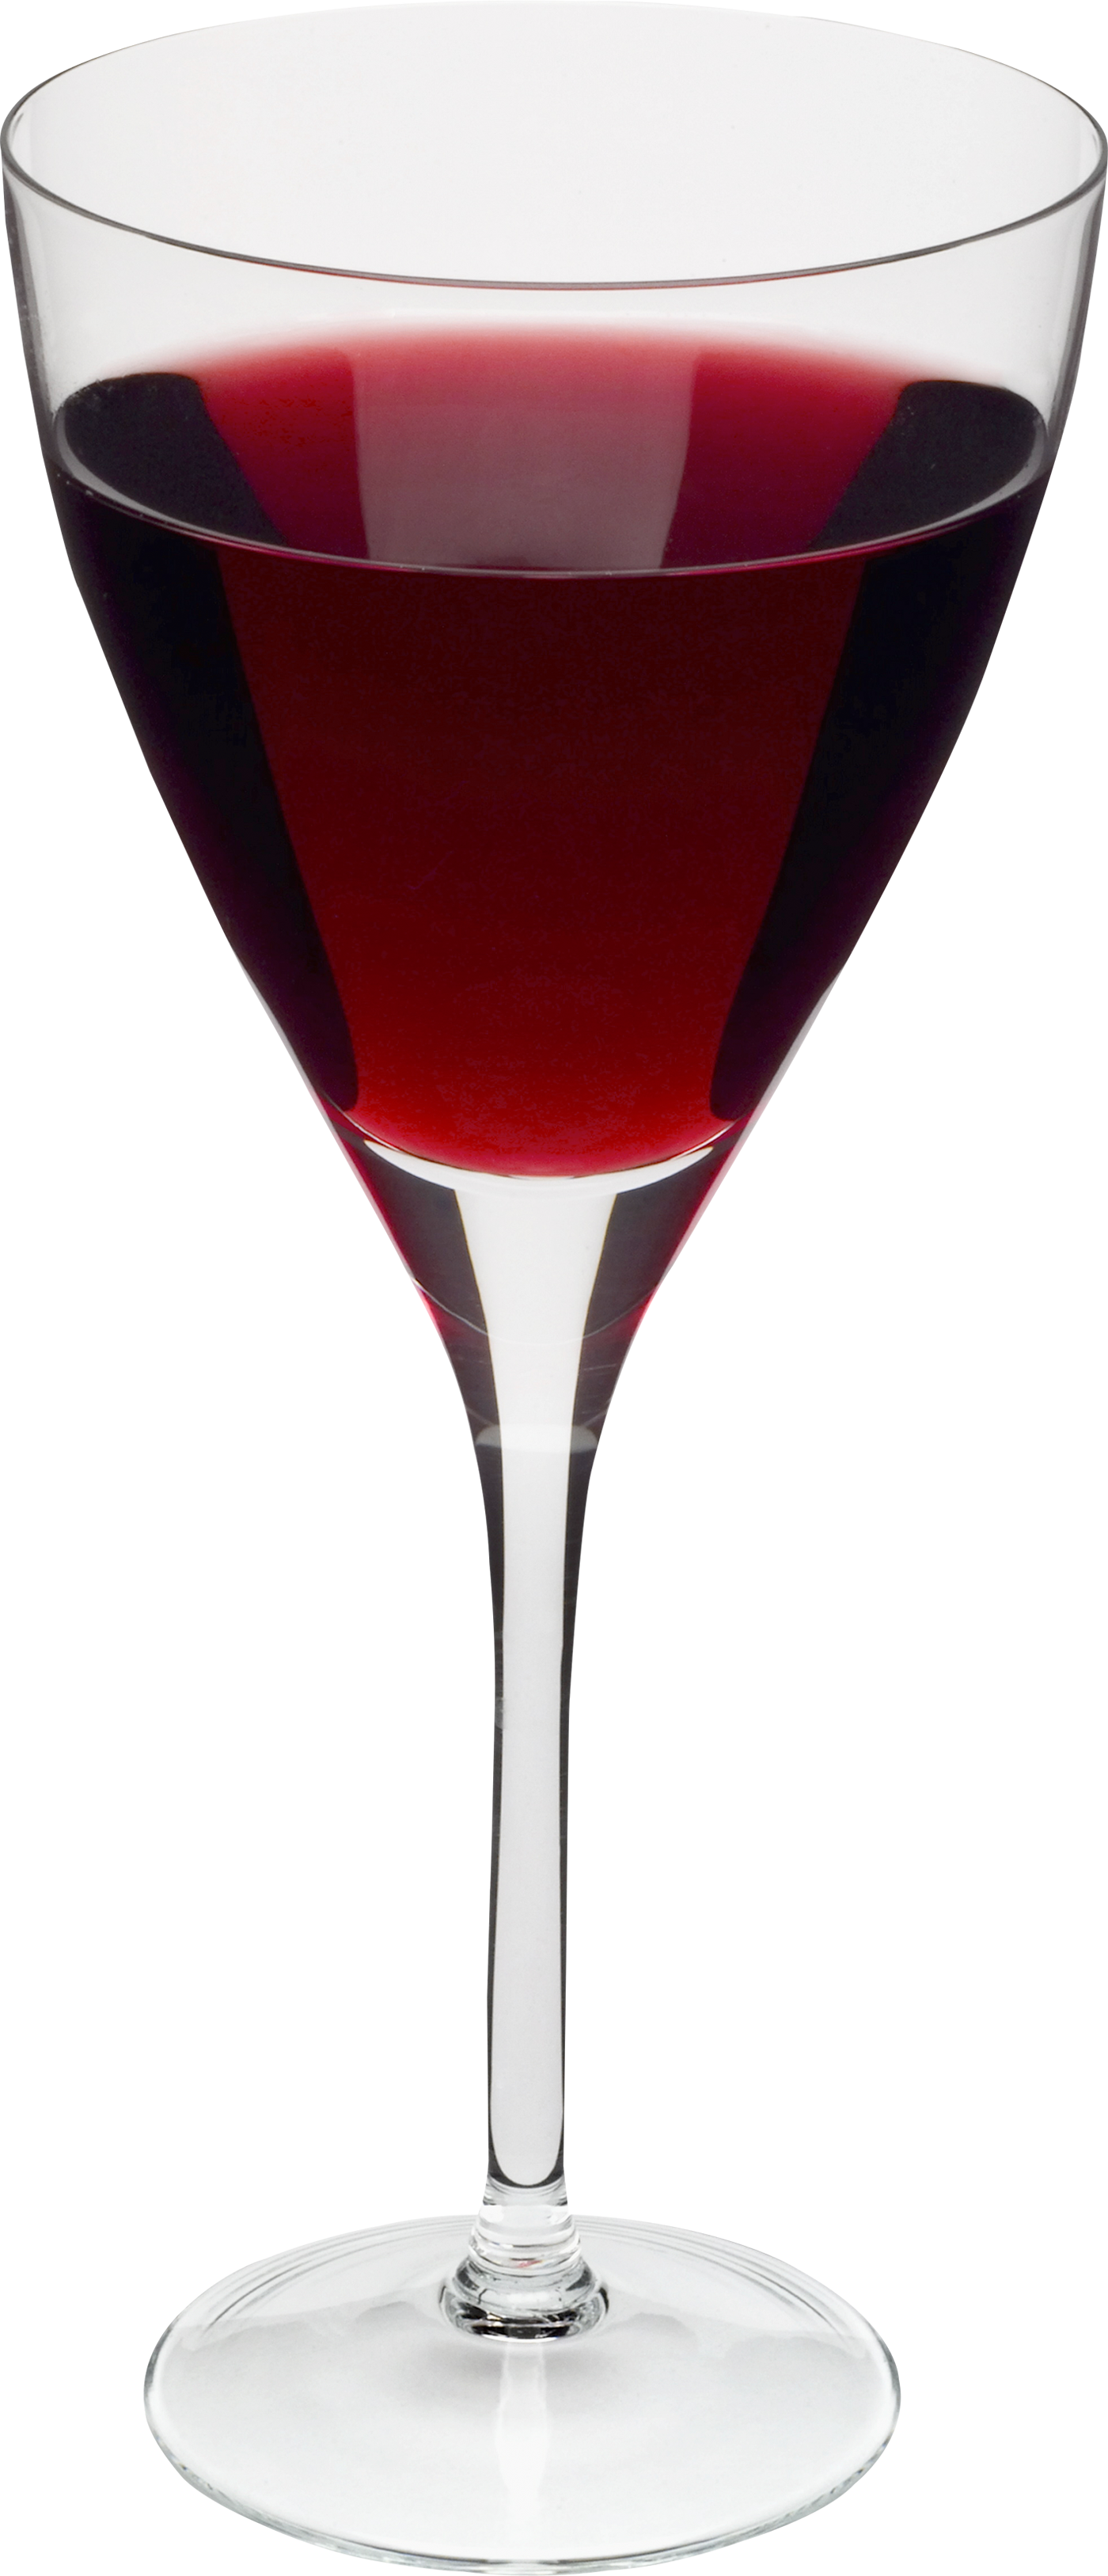 Drinking clipart red wine.  collection of martini